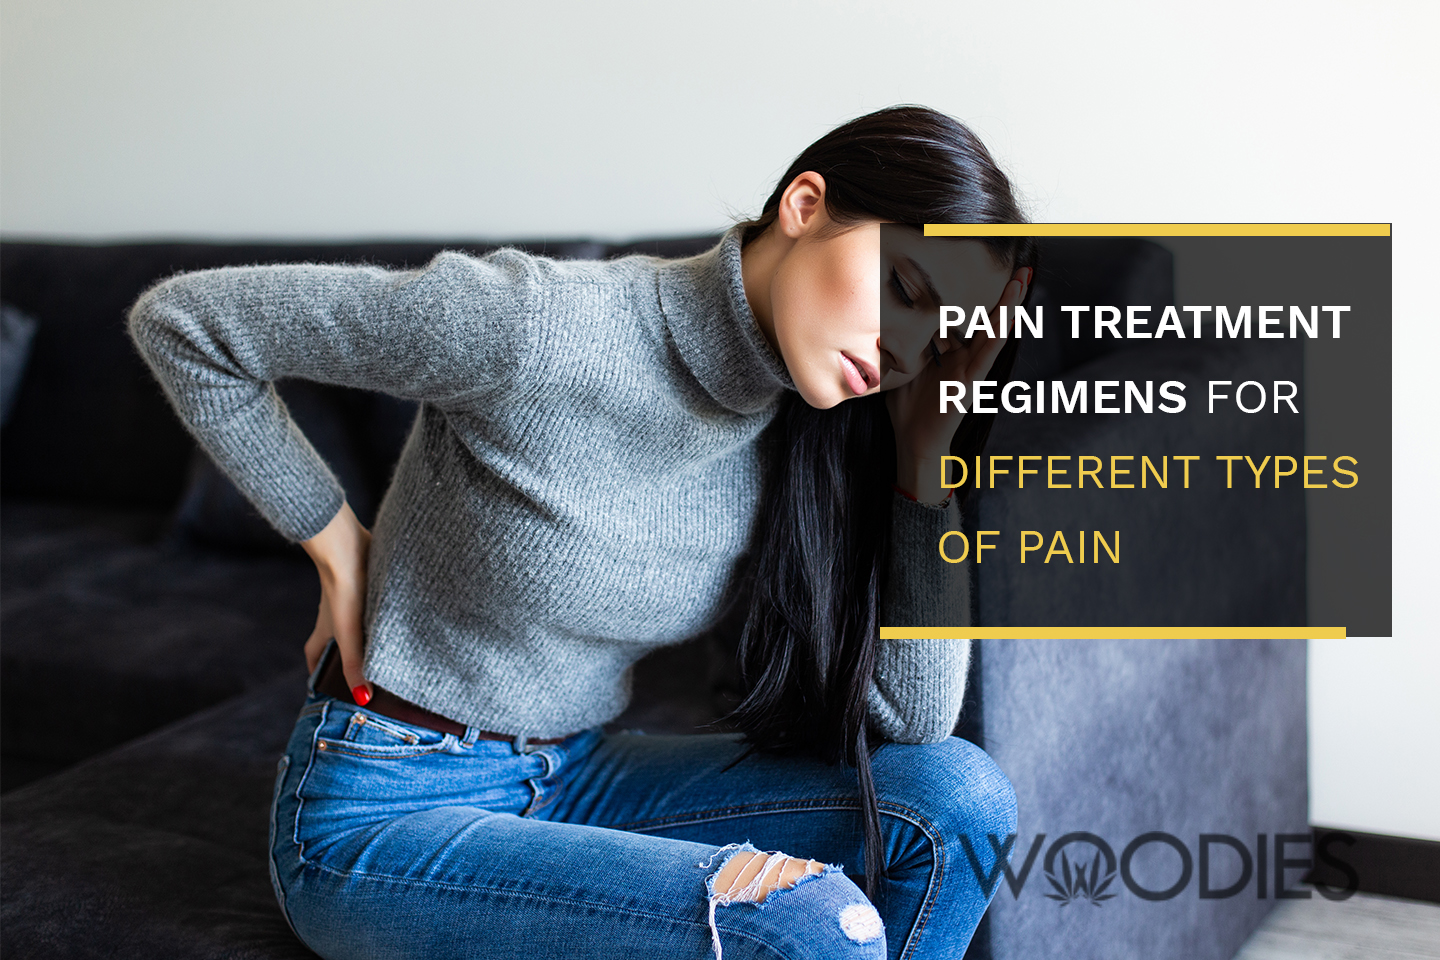 Pain Treatment Regimens for Different Types of Pain